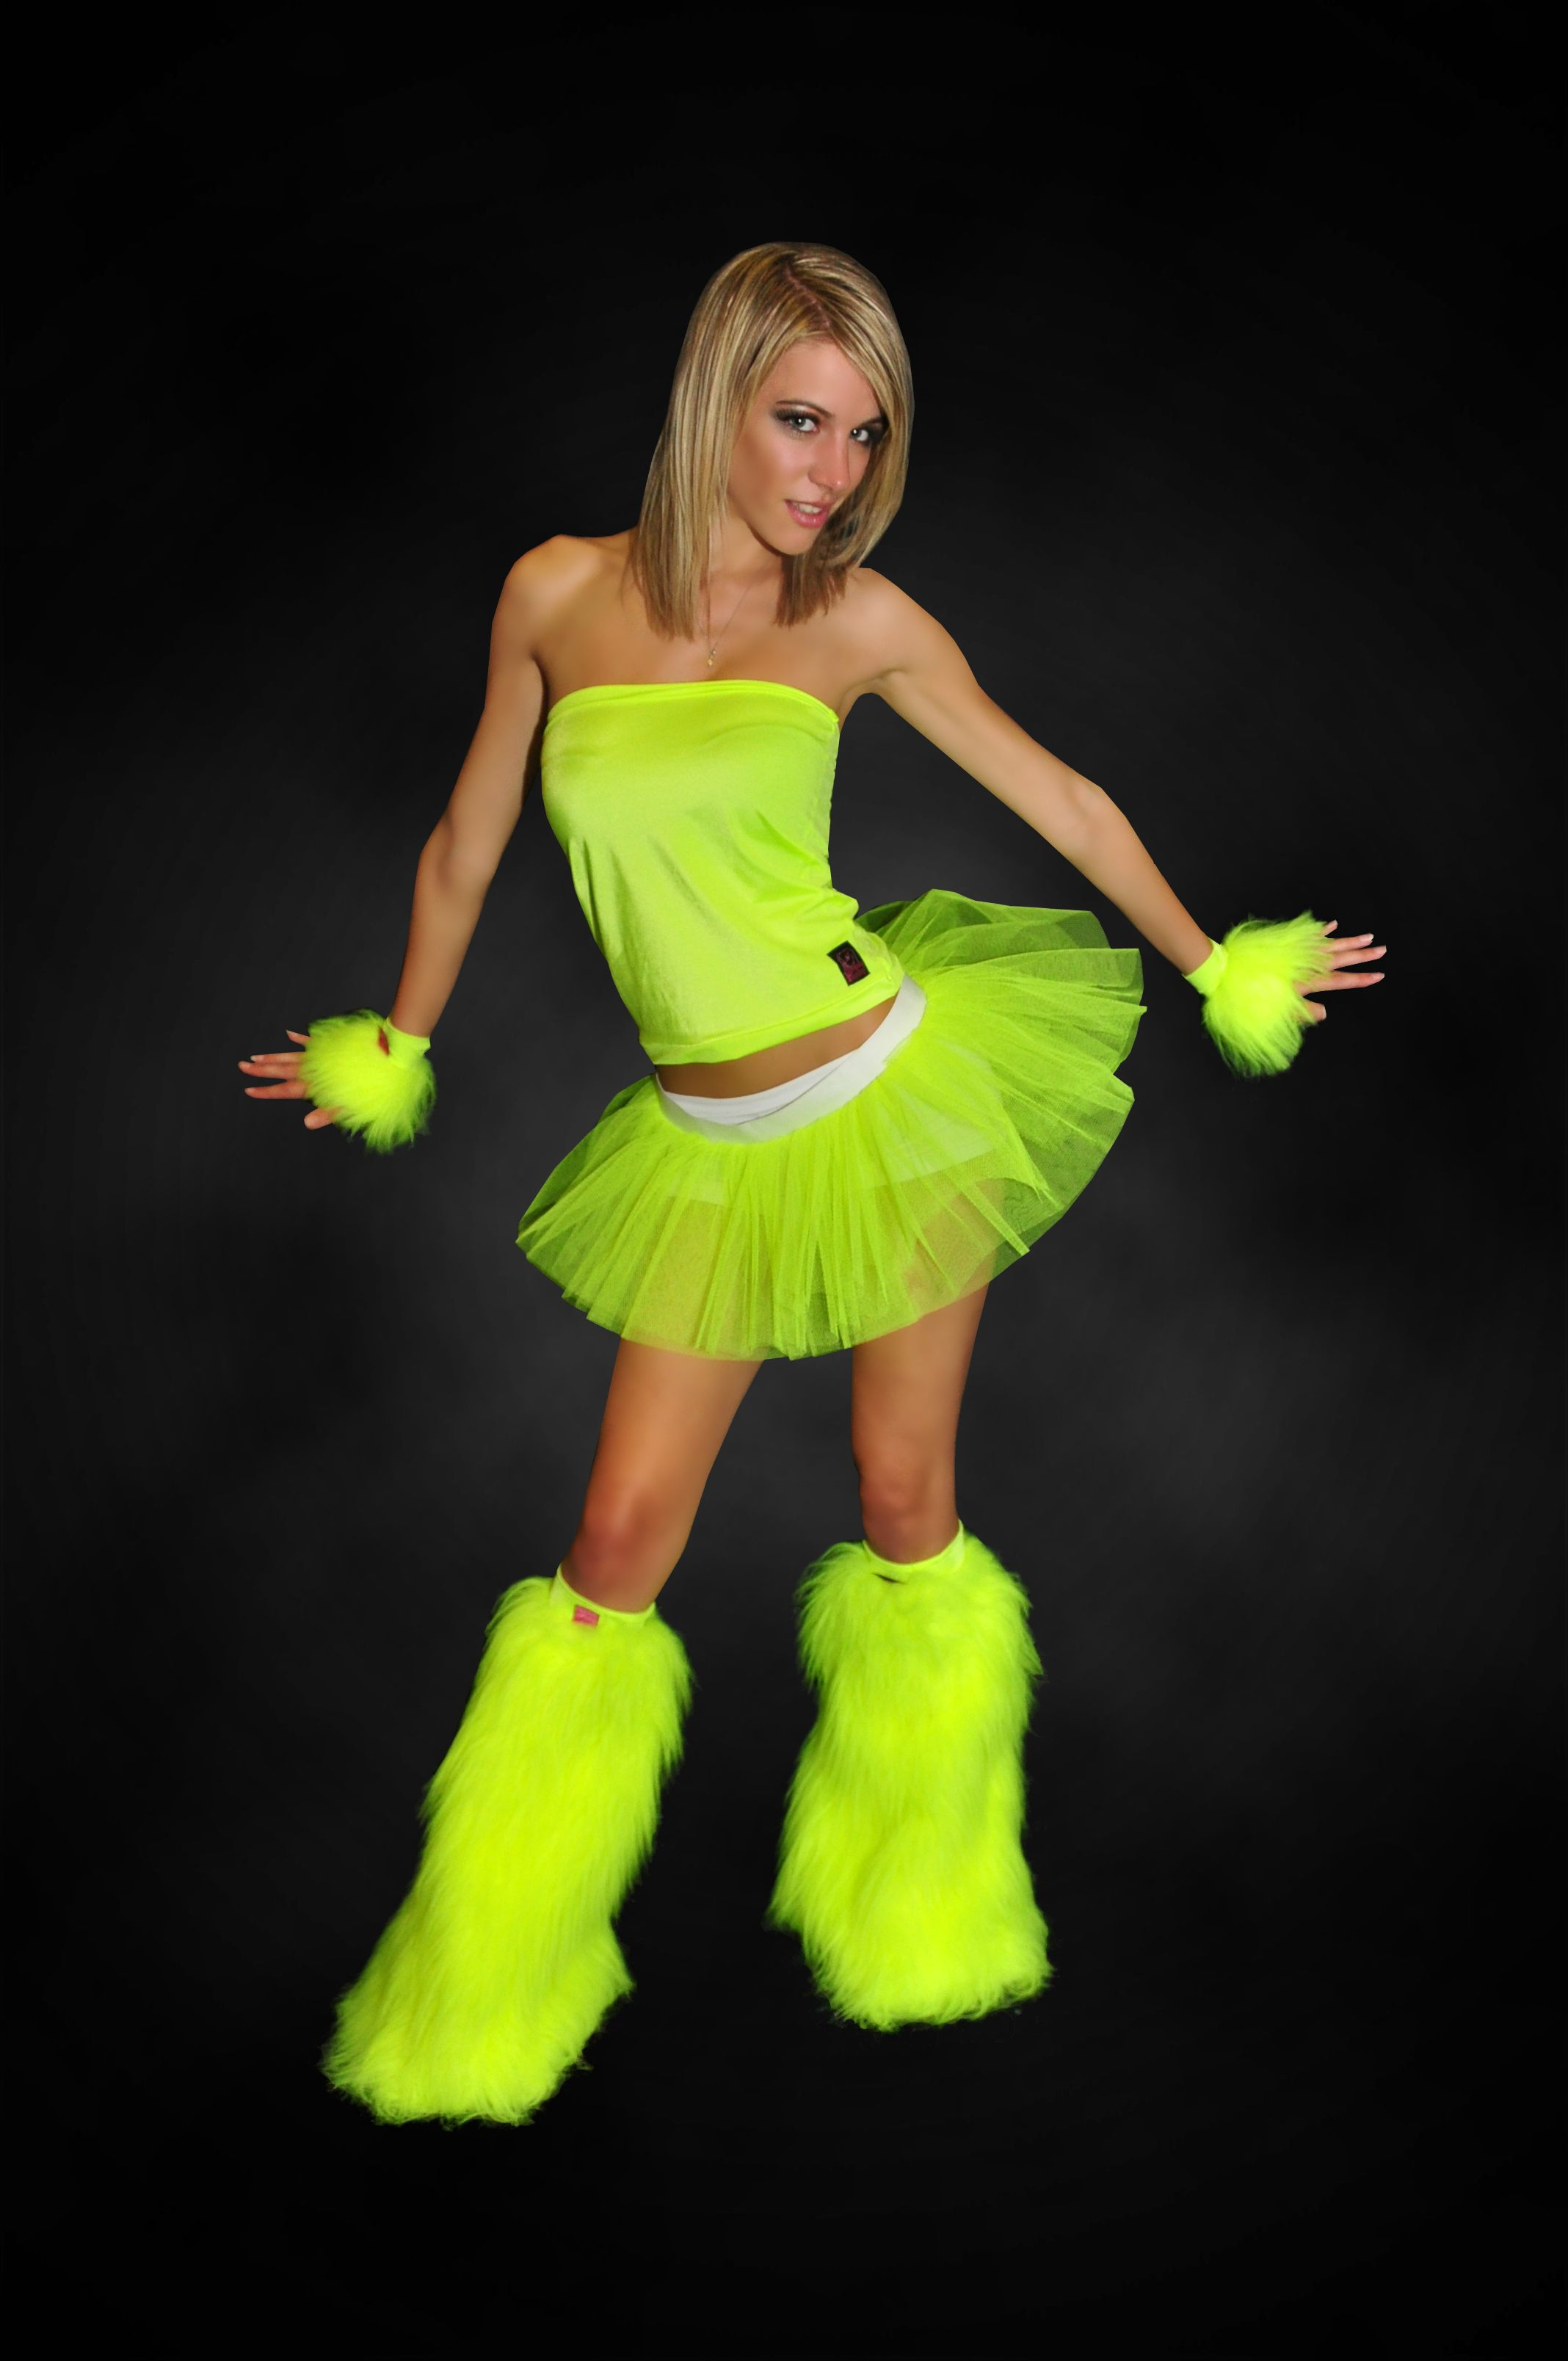 Neon Outfit Party : items that are the color yellow rave tutu rave outfits neon outfits neon fashion ~ Yuntae.com Dekorationen Ideen